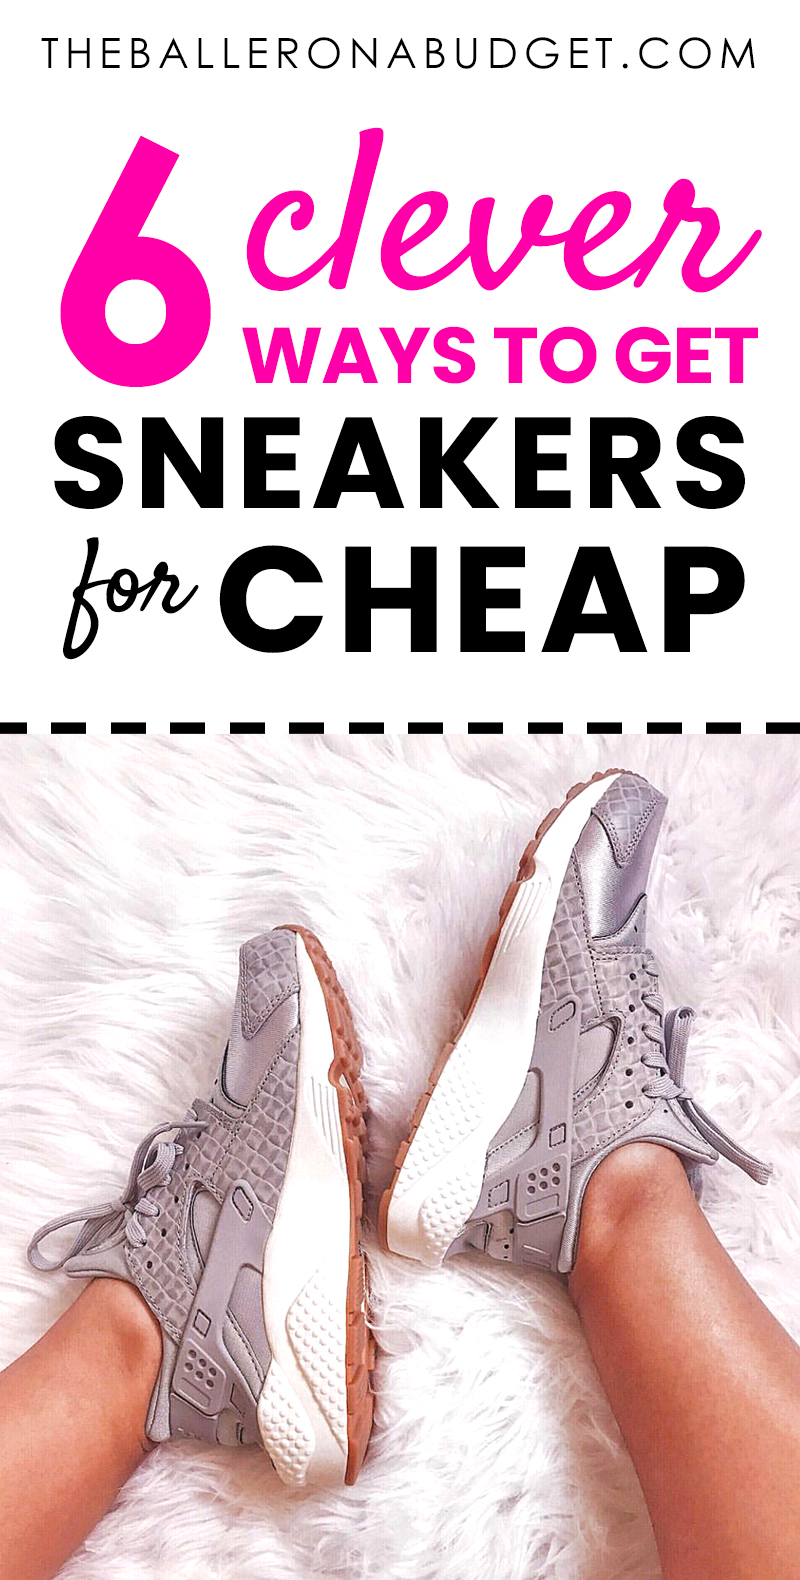 You don't have to buy Converse, Nikes or Jordans at full price. I've collected tons of sneakers (even limited edition ones) only when discounted, all very effortlessly. Here are my 6 tips for buying the hottest sneakers. - www.theballeronabudget.com